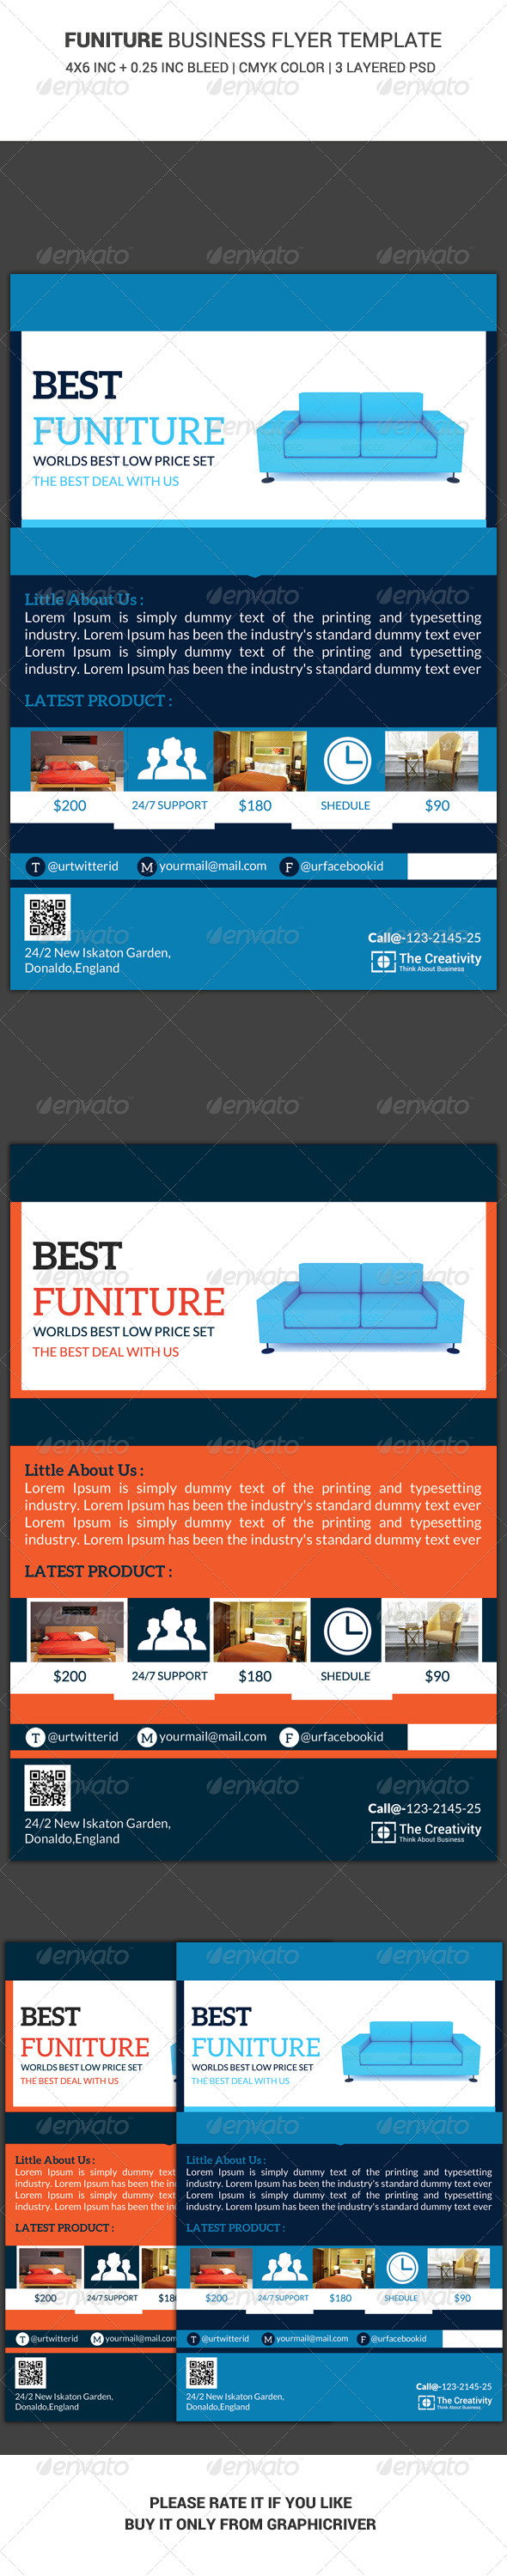 GraphicRiver Furniture Business Flyer Template 6436866